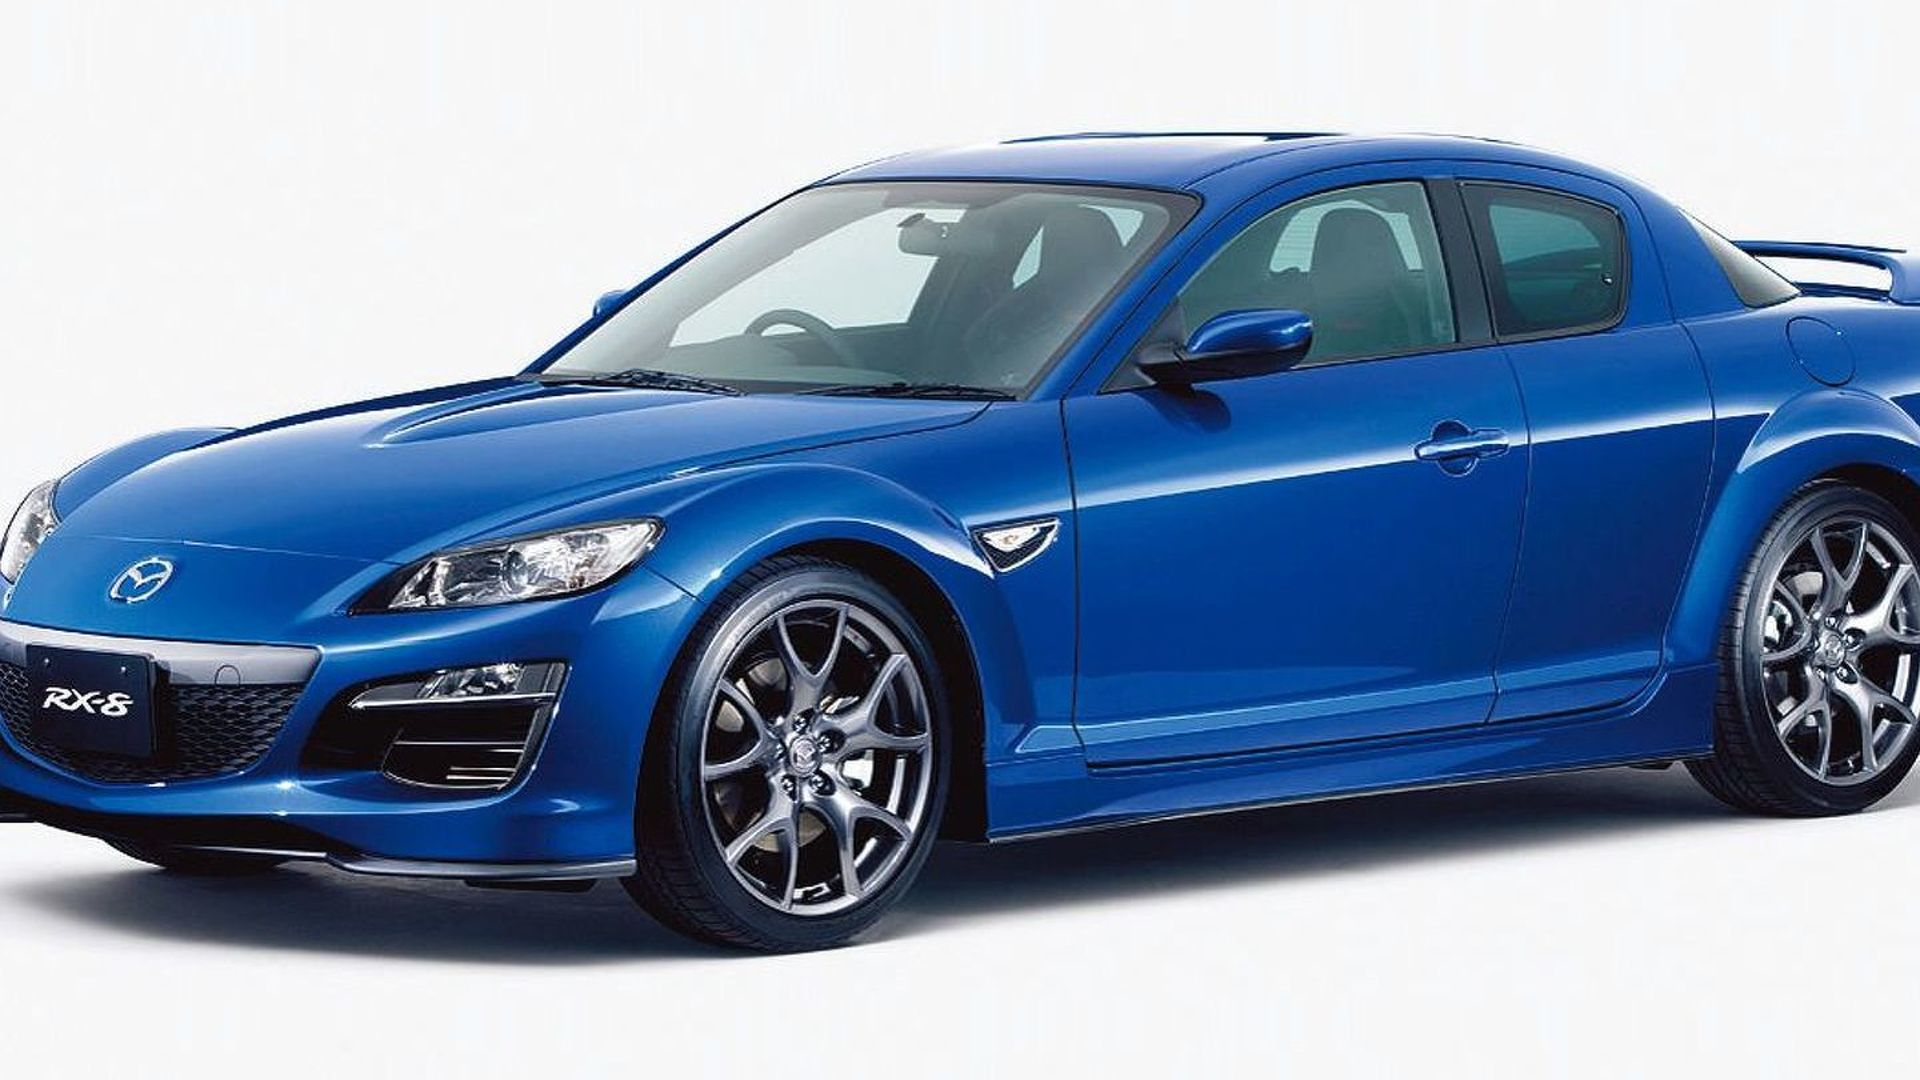 Mazda Rx 8 Successor With Rotary Engine Planned For 2017 Report